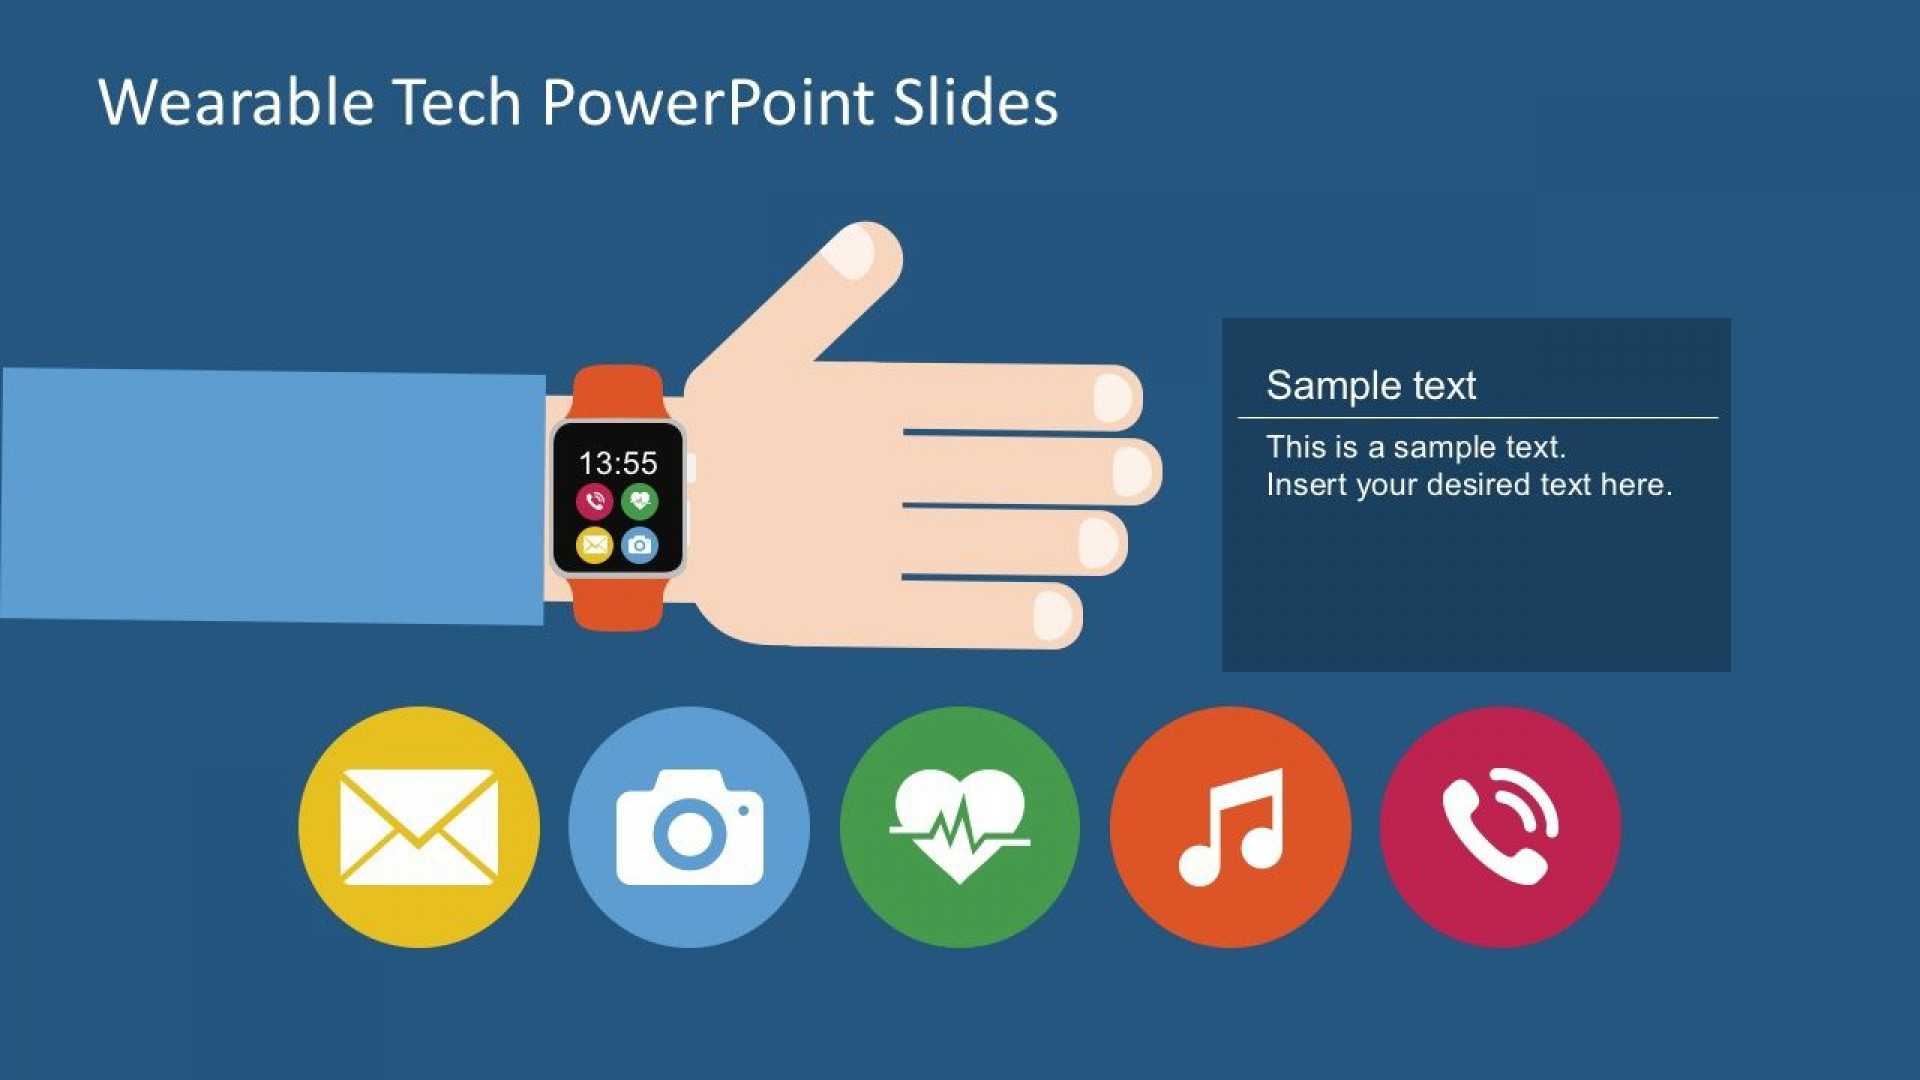 005 Phenomenal Free Technology Powerpoint Template High Resolution  Templates Animated Information Download1920